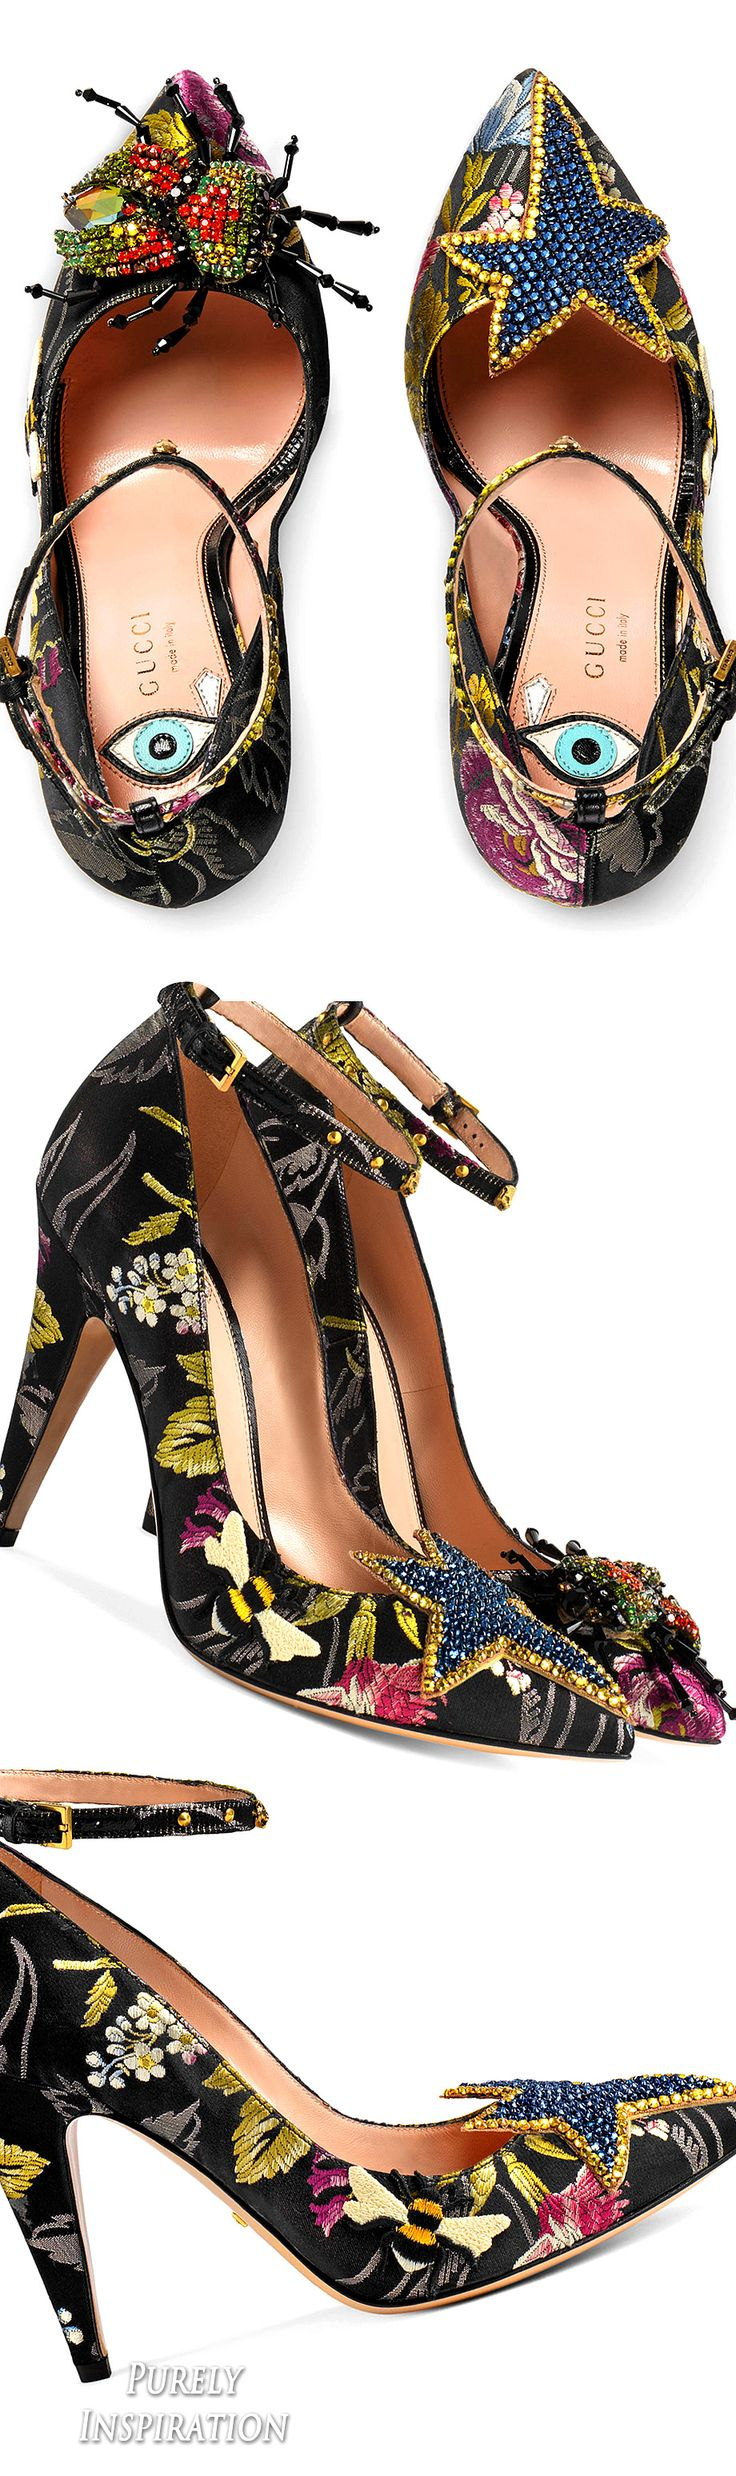 Gucci Floral jacquard pump | Purely Inspiration